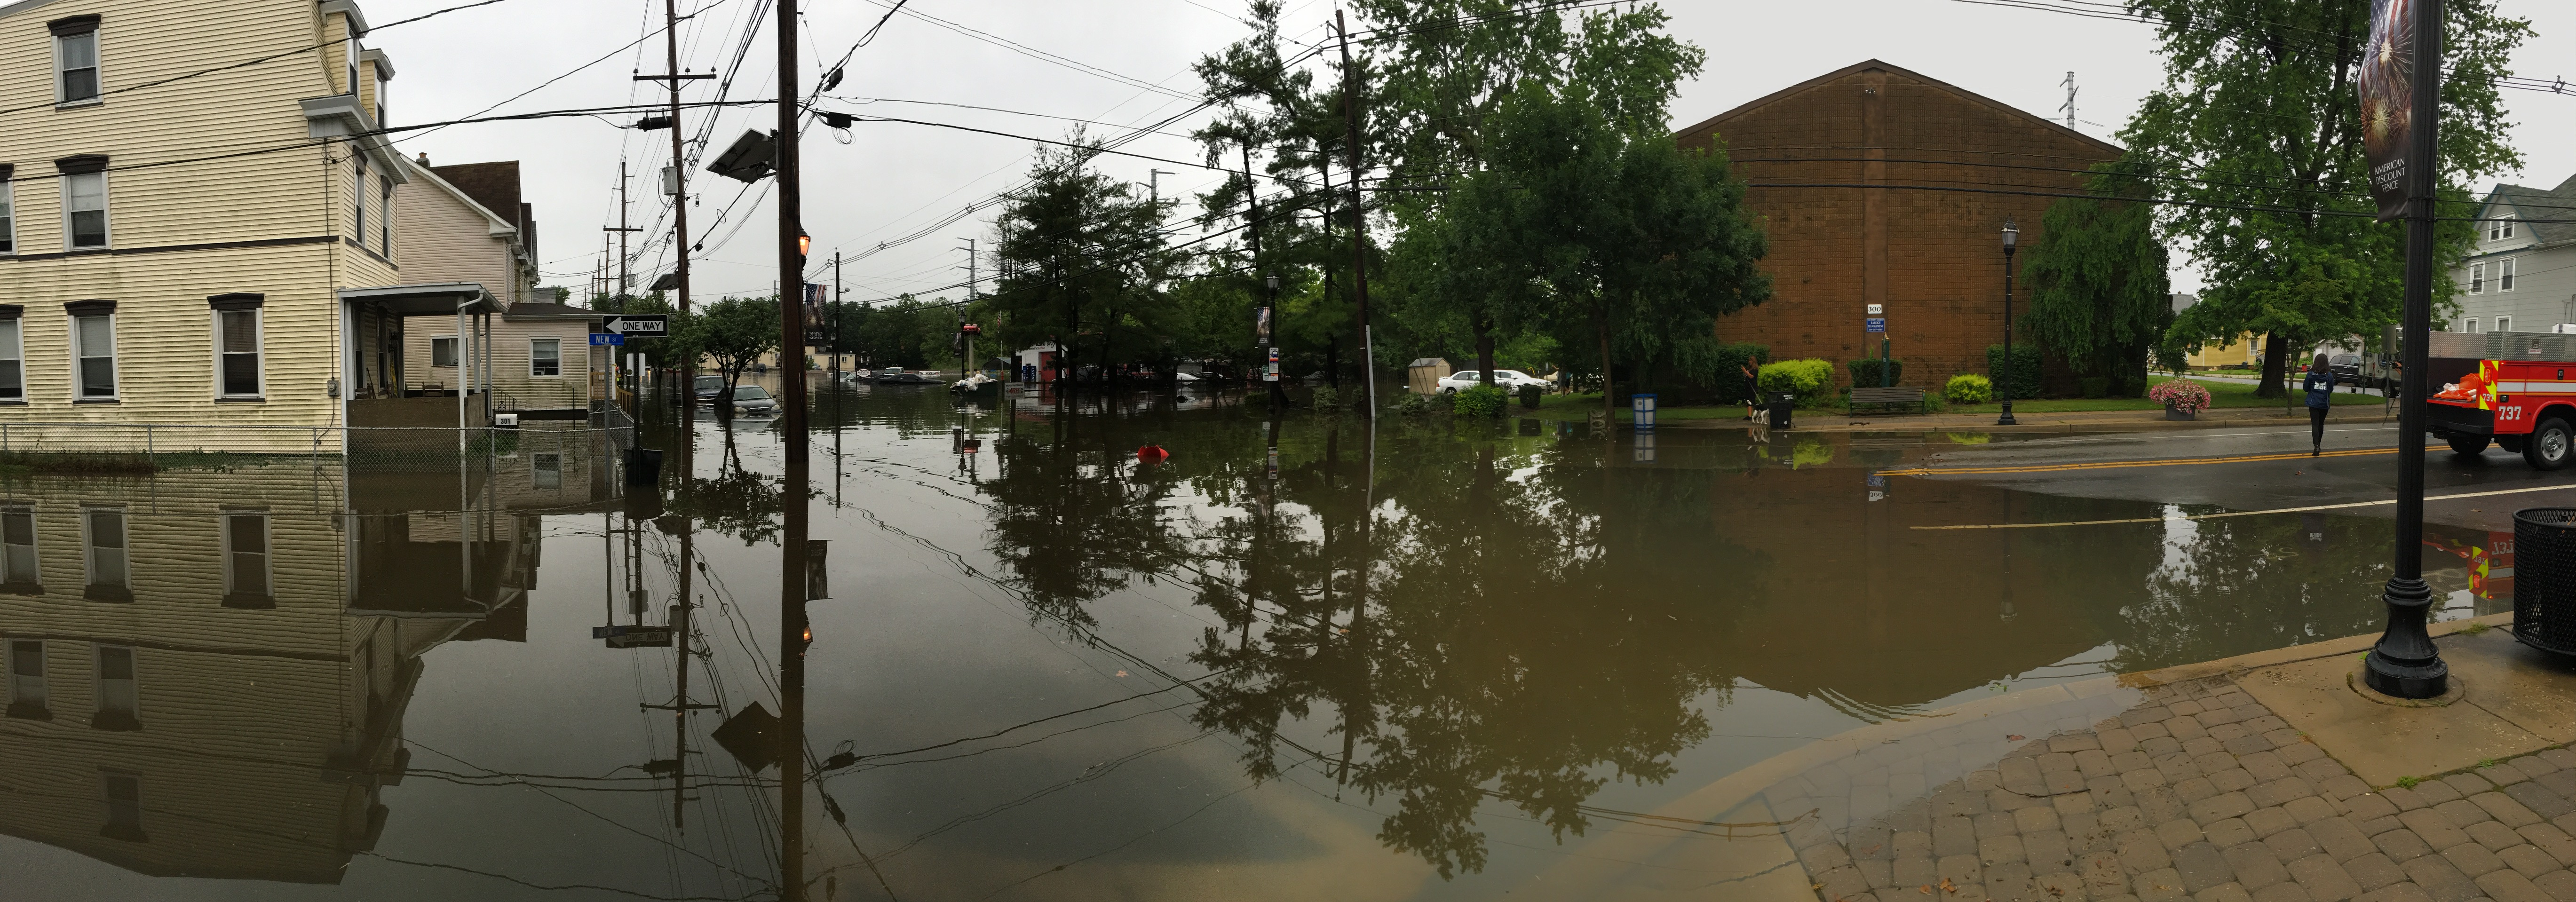 New Jersey Weather: Dozens Of People Evacuated From